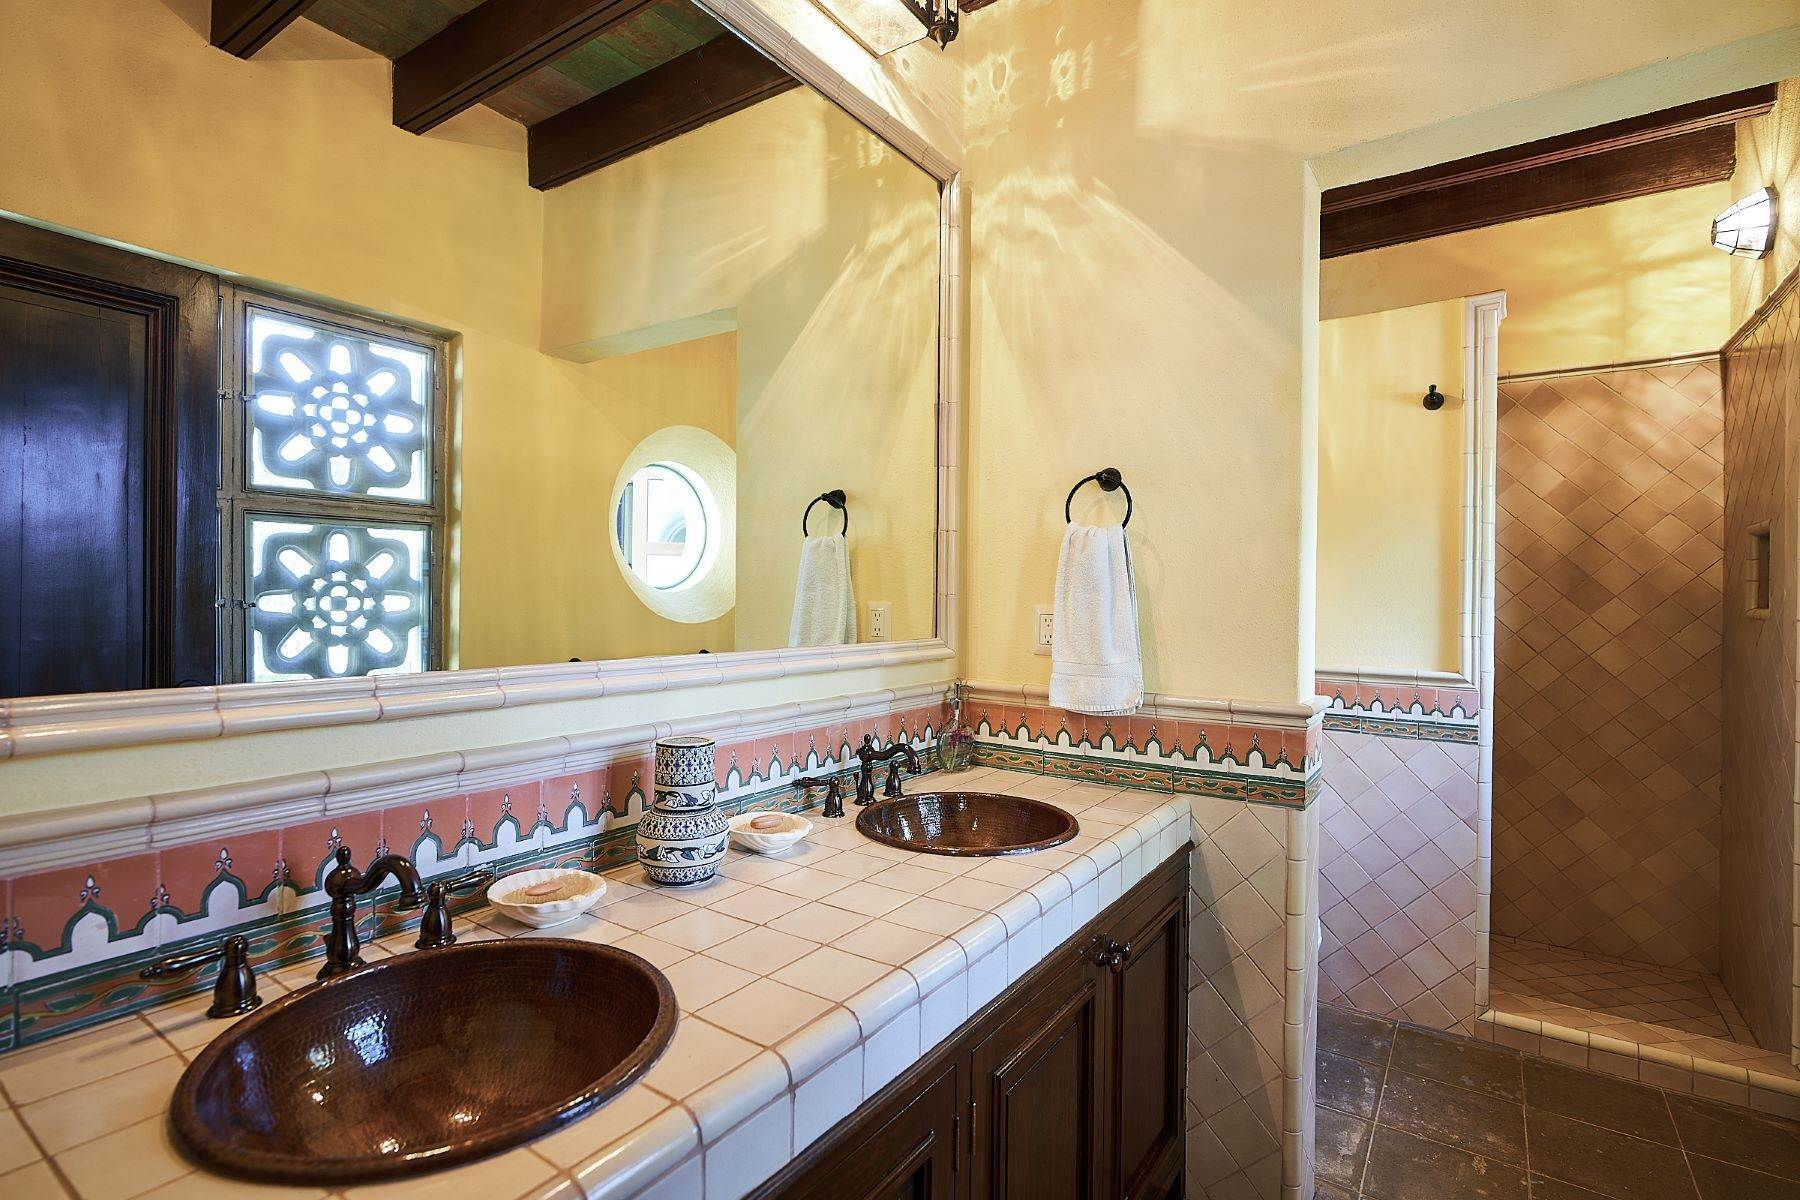 24. Single Family Homes for Sale at Casa Ixchel Privada de Pila Seca 6 San Miguel De Allende, Guanajuato 37700 Mexico